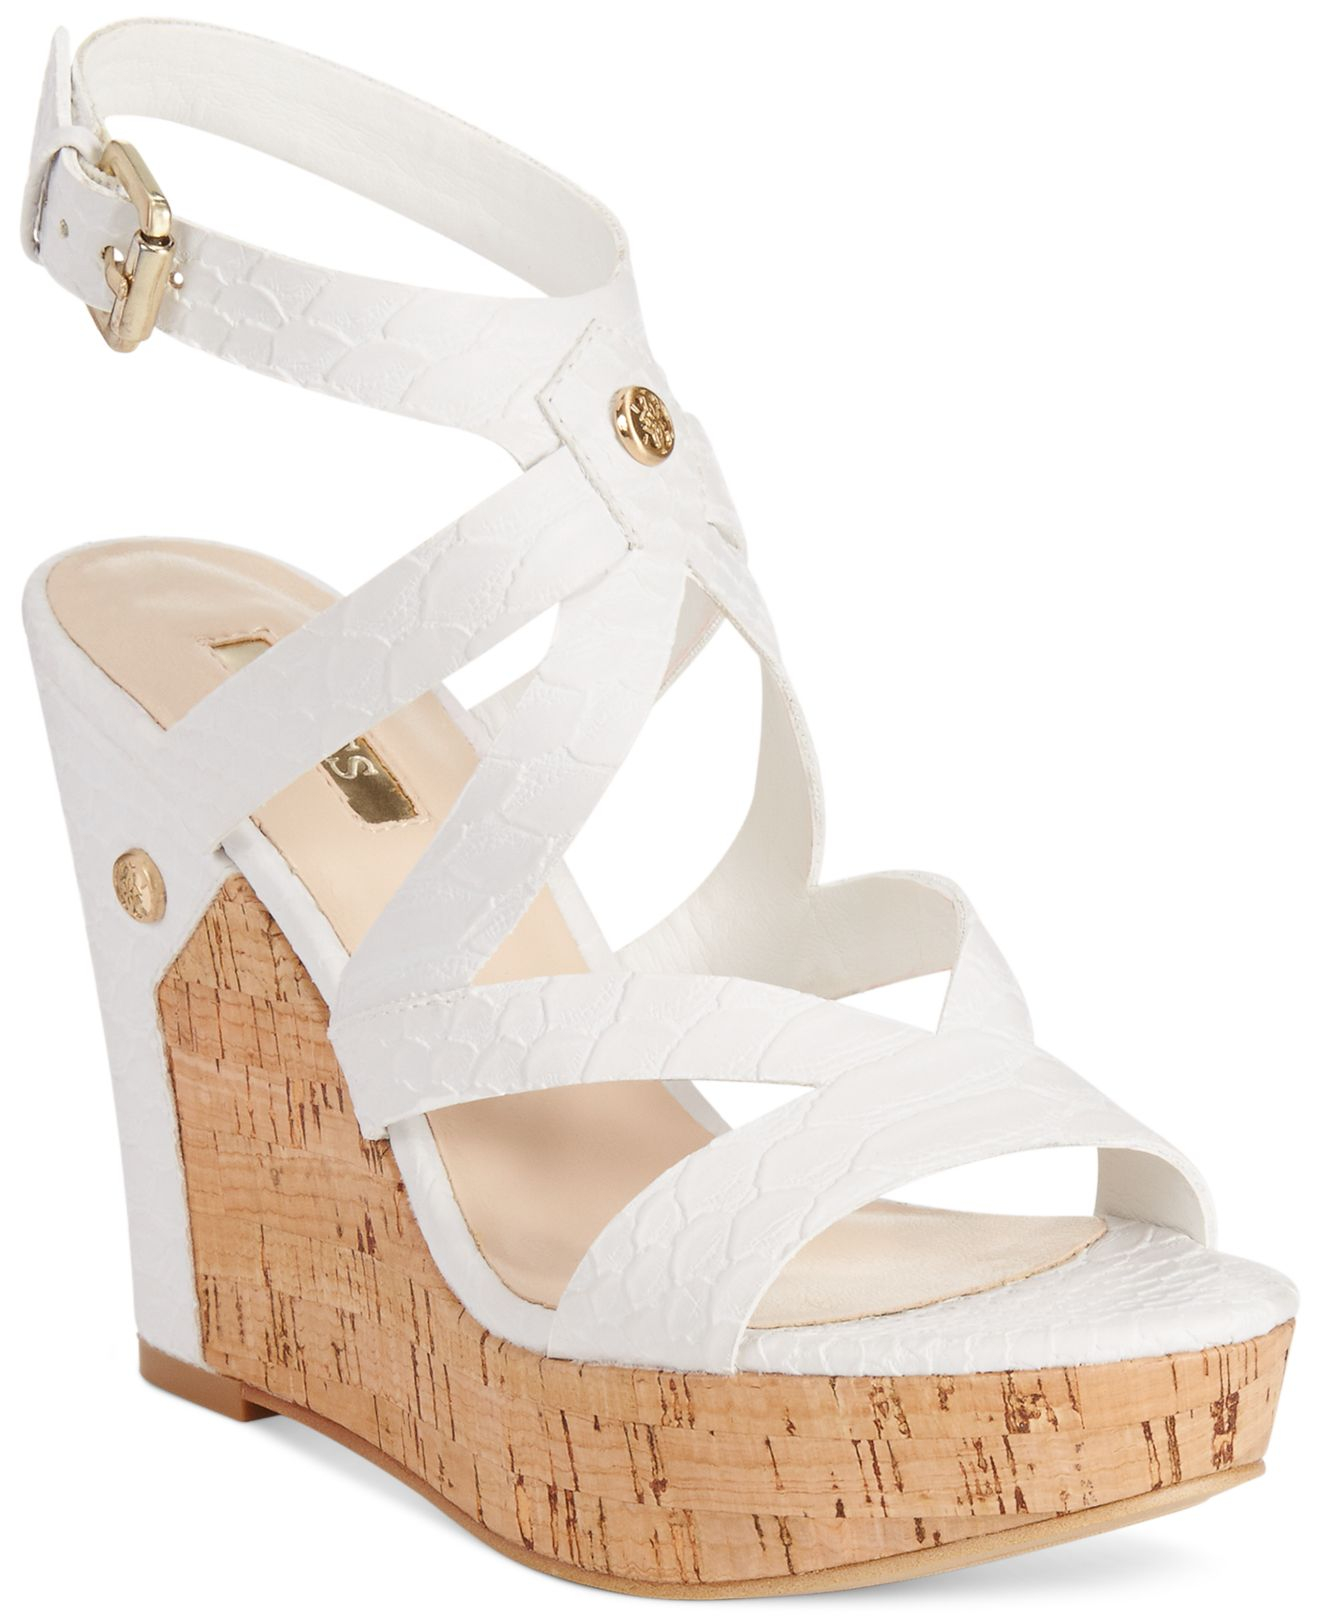 d77748a13825 Lyst - Guess Women S Harlee Cork Platform Wedge Sandals in White